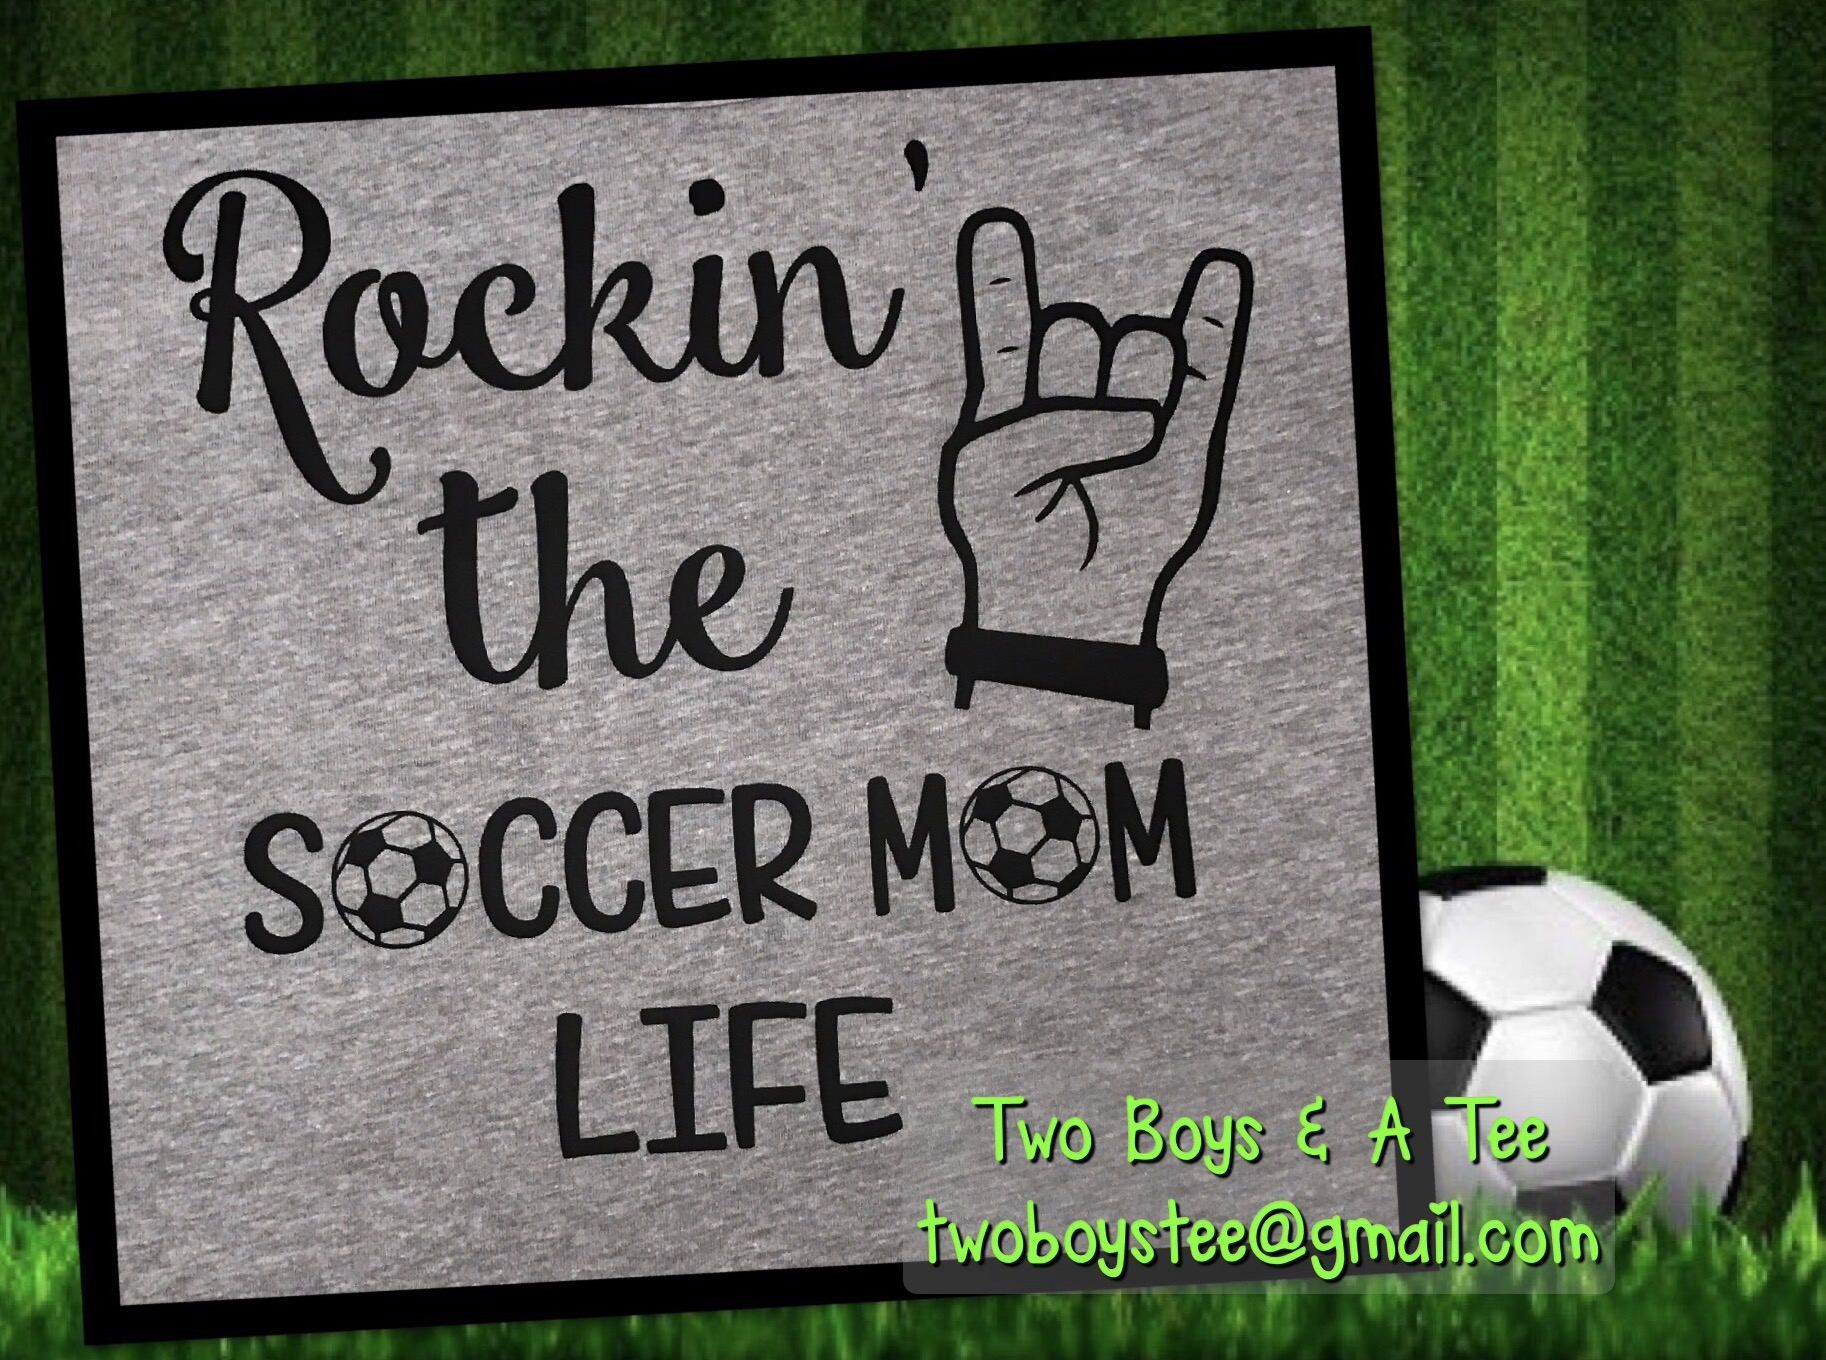 f2d62530f Rockin' the Soccer Mom Life S M L XL 2X Basic Unisex or Ladies Tee fun  saying for mom or dad any sport football volleyball by TwoBoysAndATee on  Etsy